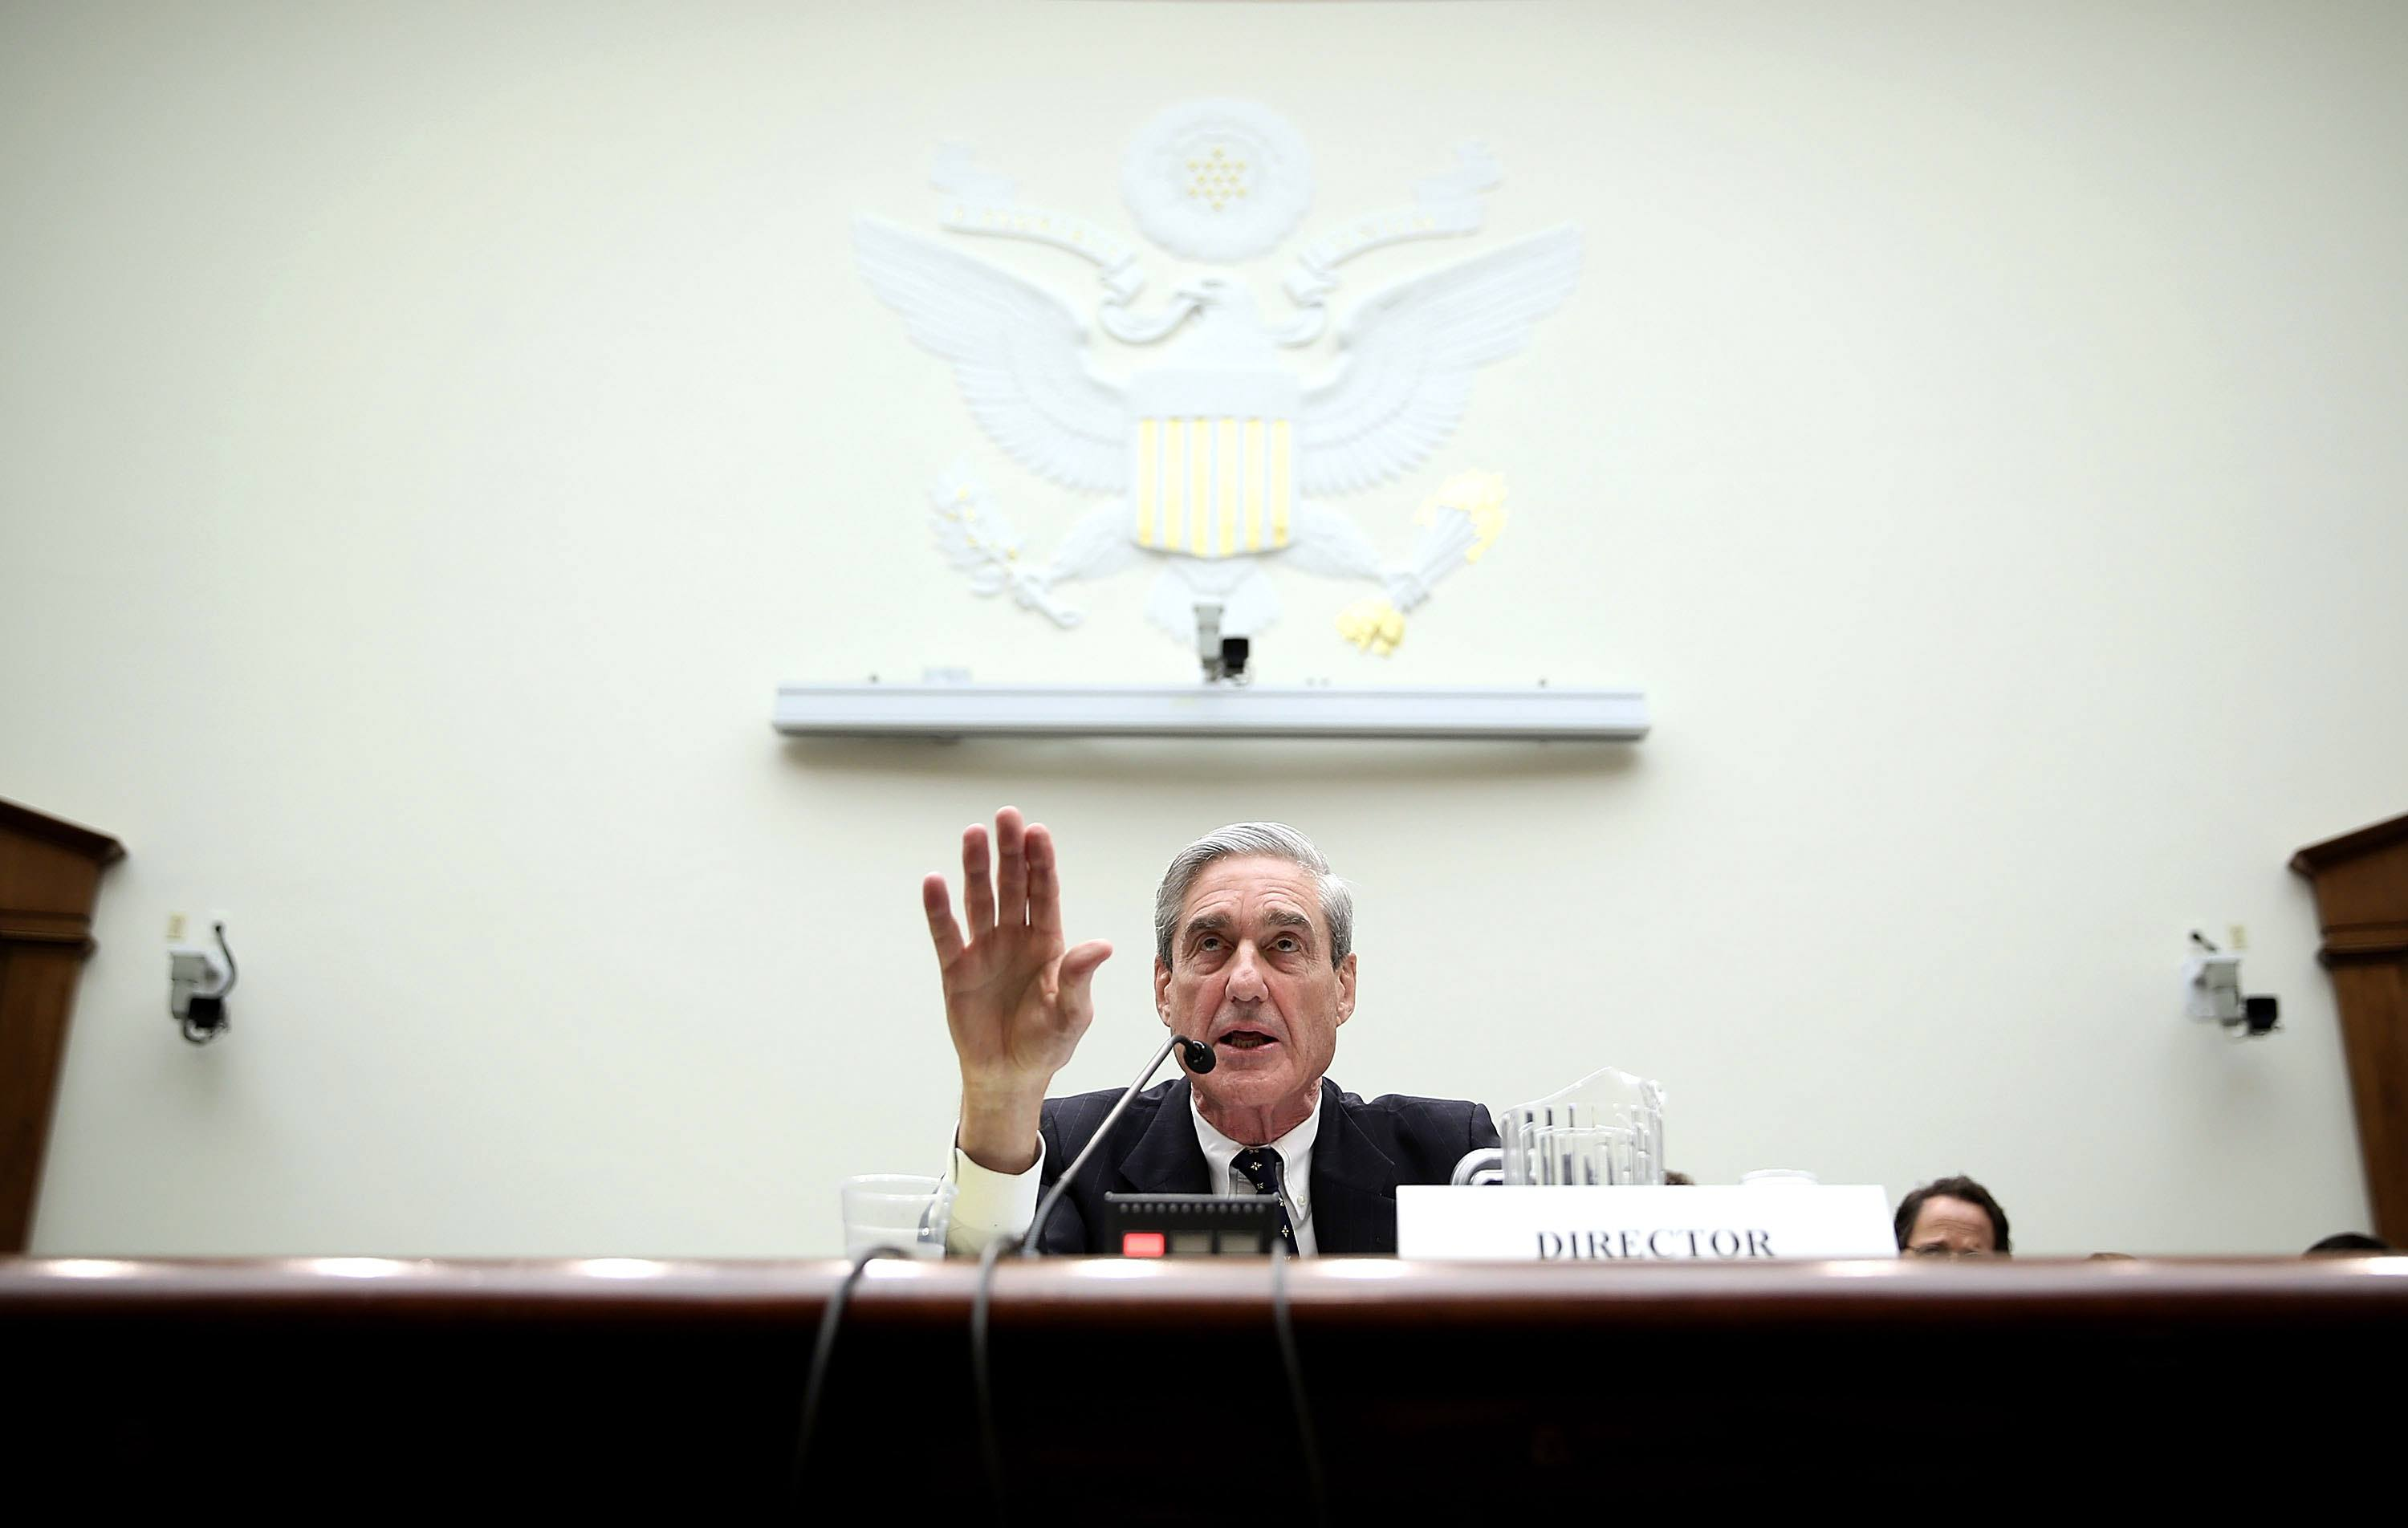 Mueller sitting at a desk in front of large white wall.